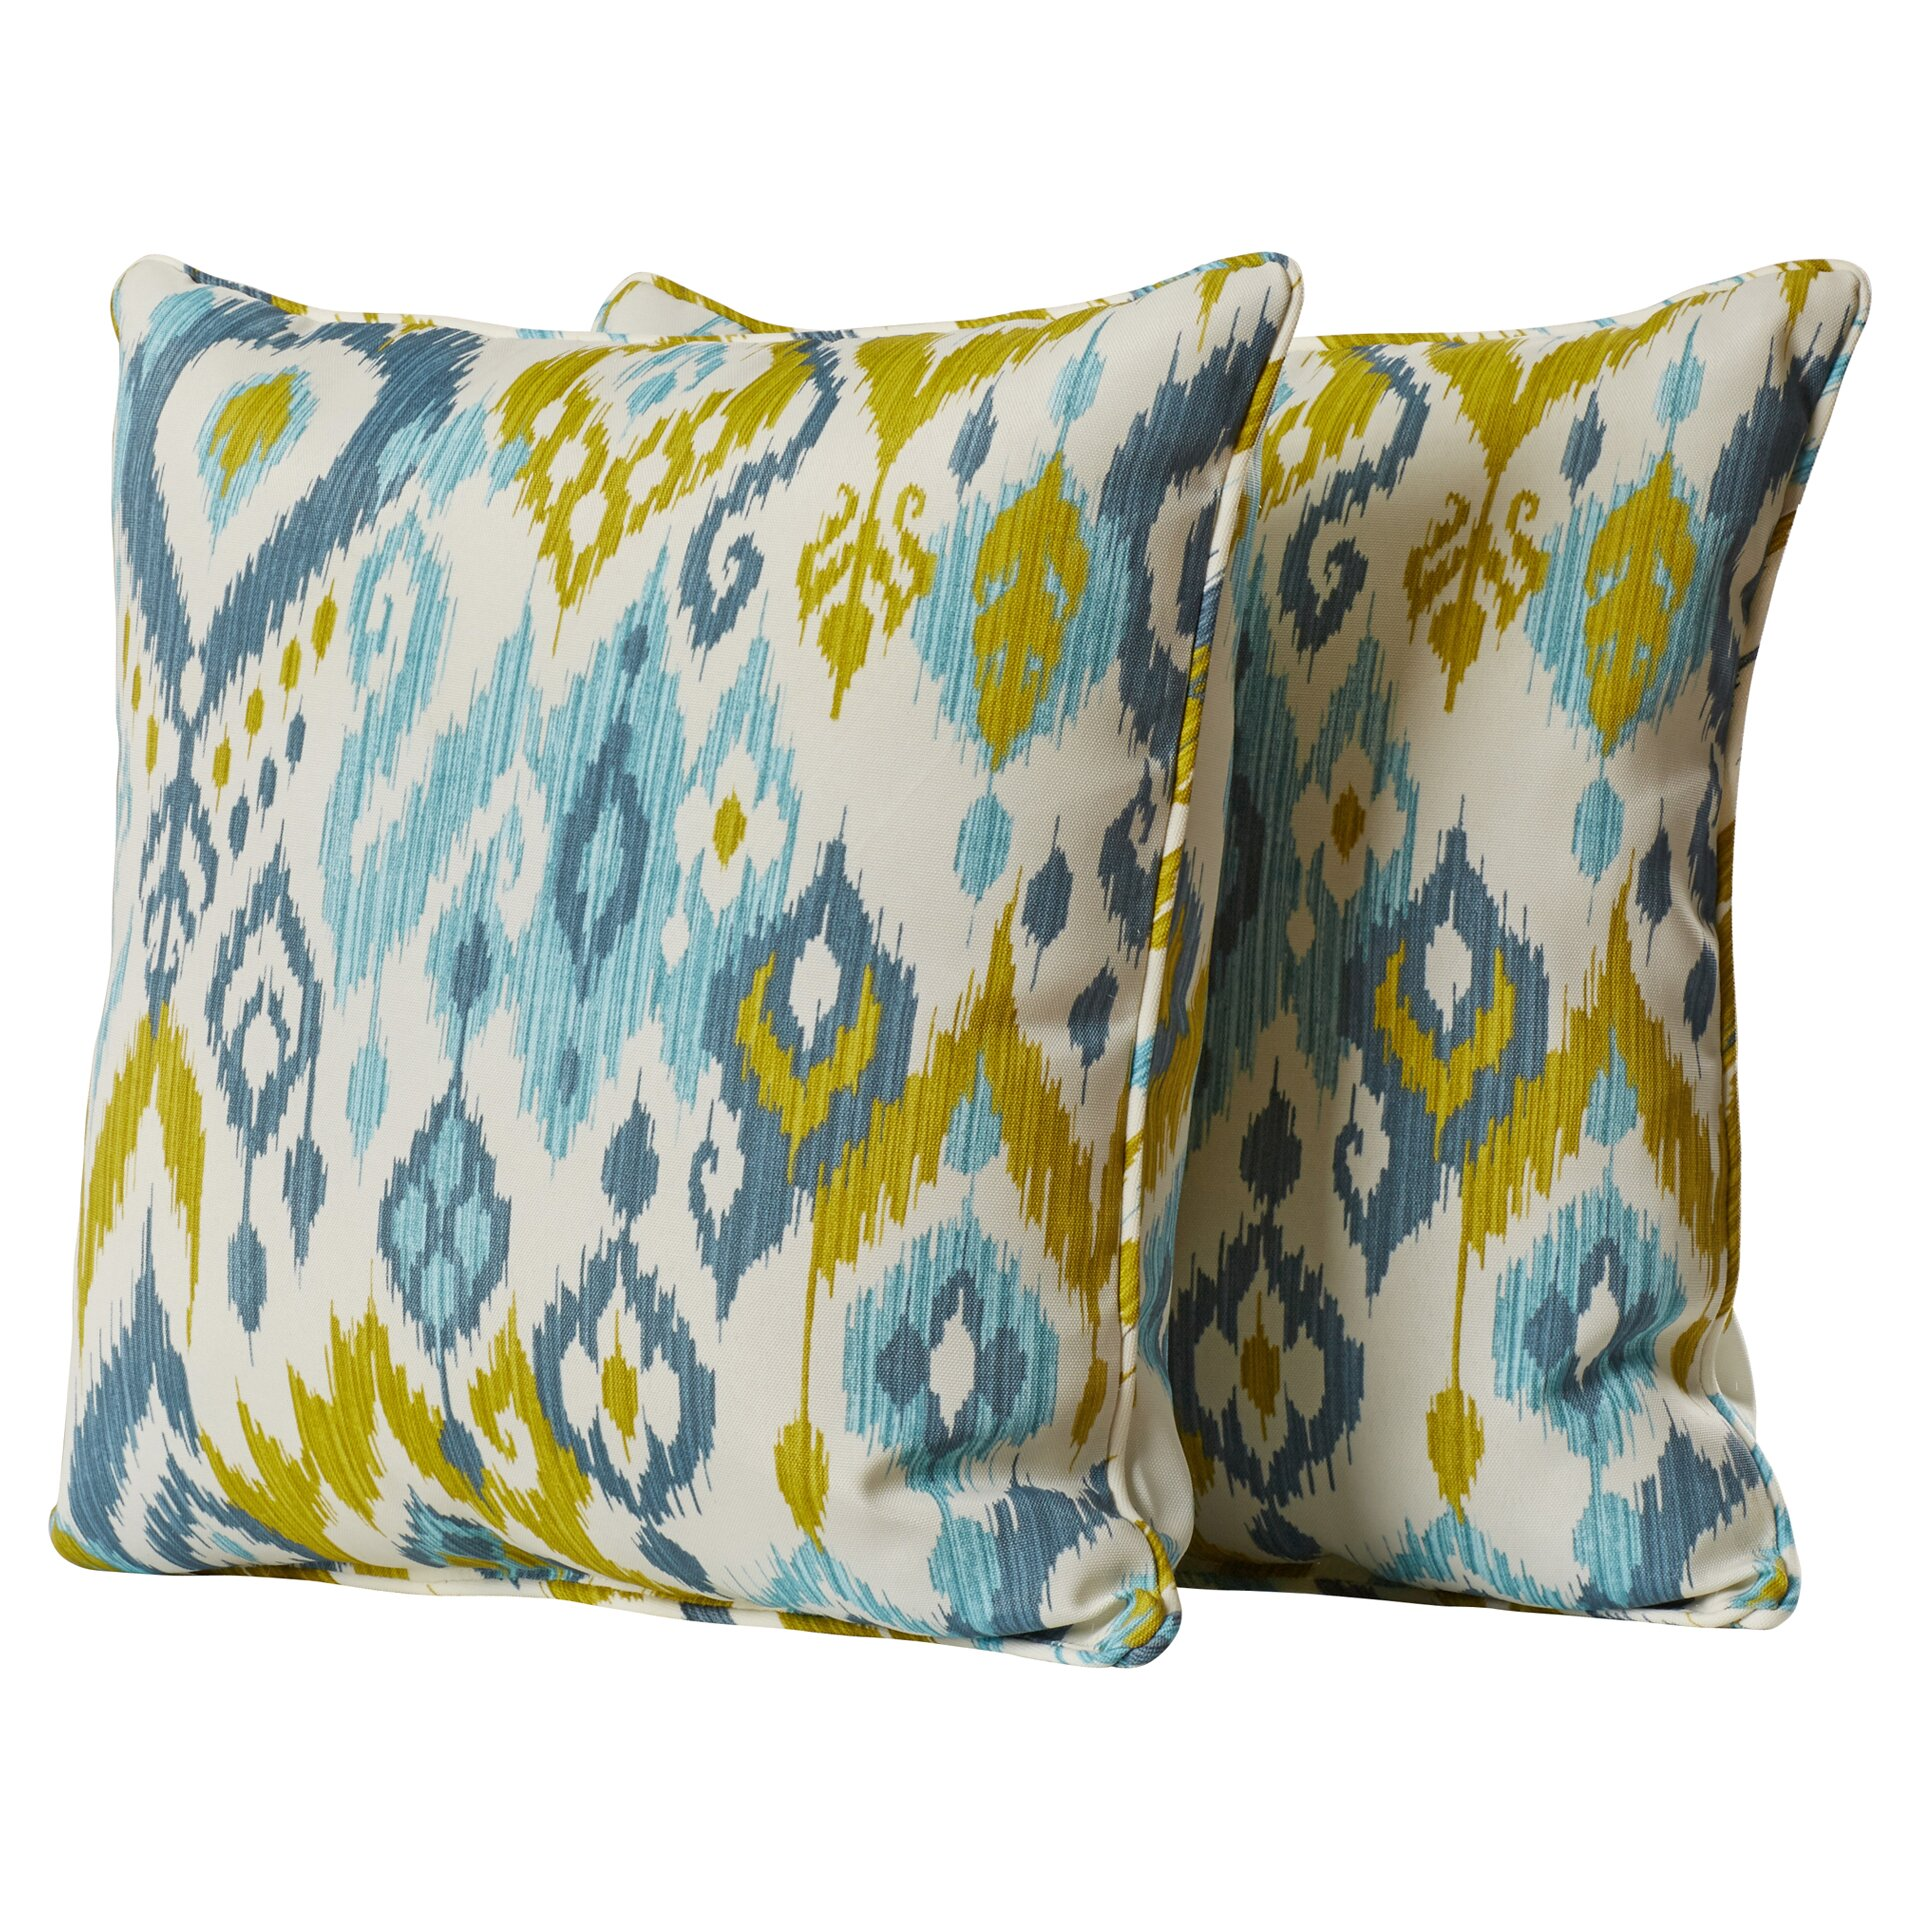 Throw Pillows In Abuja : Bungalow Rose Wijchen Corded Indoor Outdoor Throw Pillow & Reviews Wayfair.ca